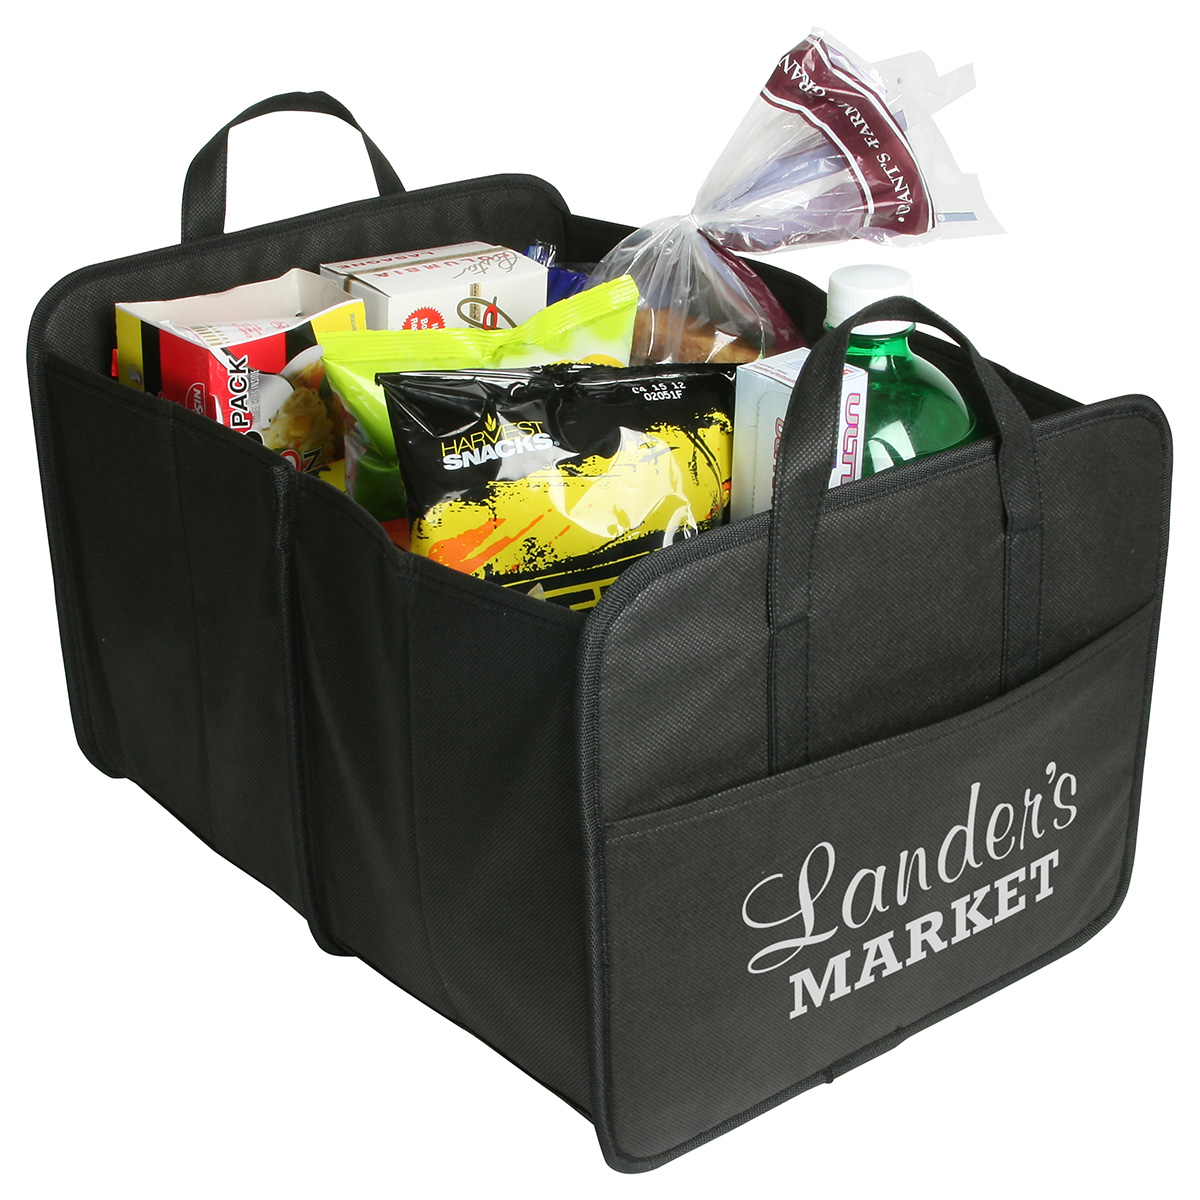 Payload Cargo Organizer, WBA-CO12 - 1 Colour Imprint